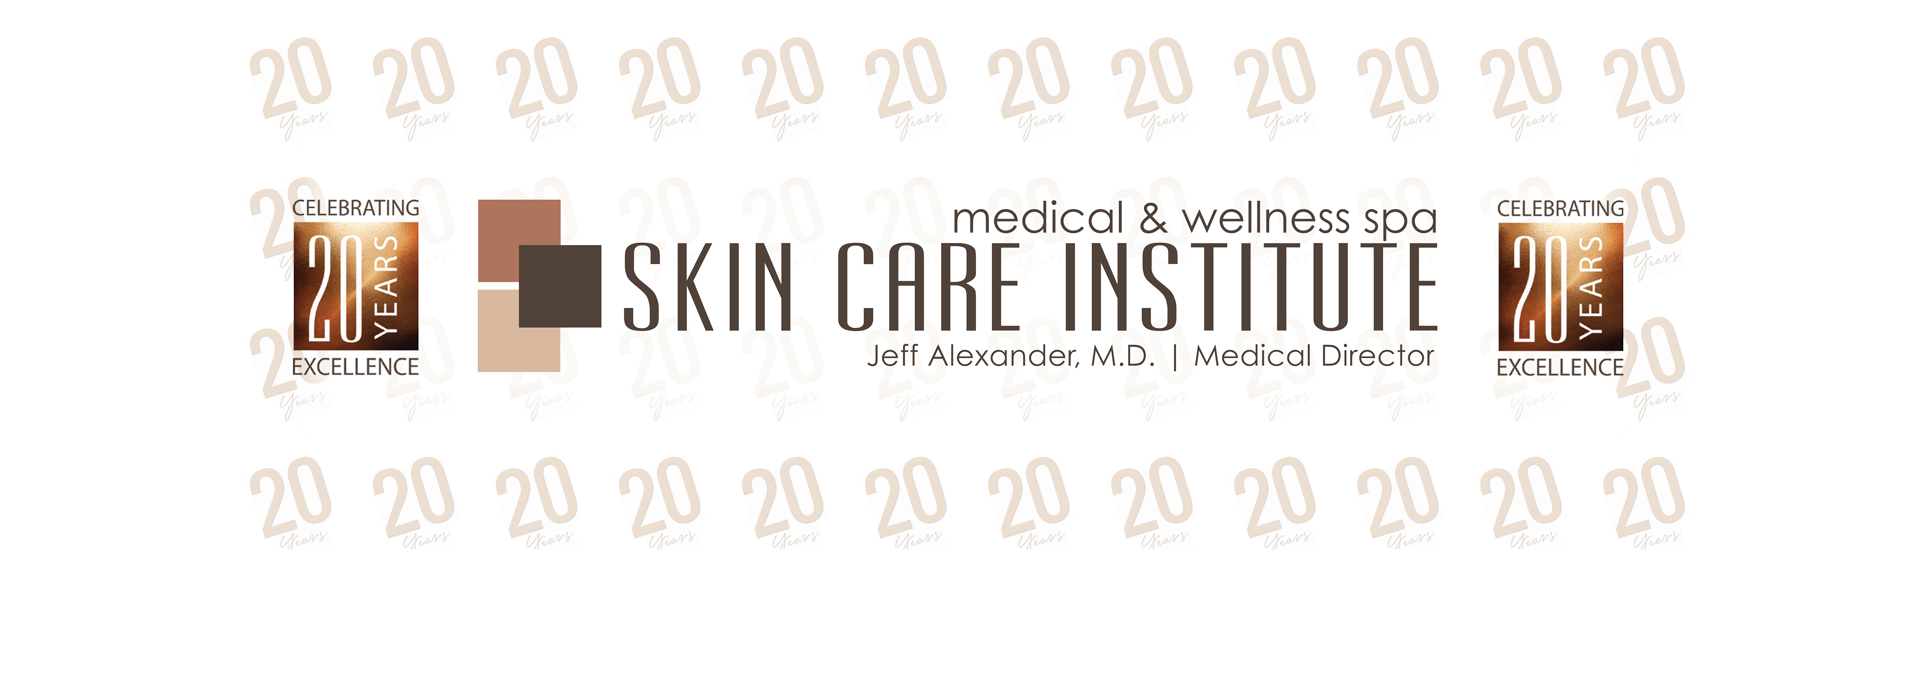 Rejuvenate yourself at Skin Care Institute in Tulsa, OK with luxiourious aesthetic treatments and spa & wellness services.